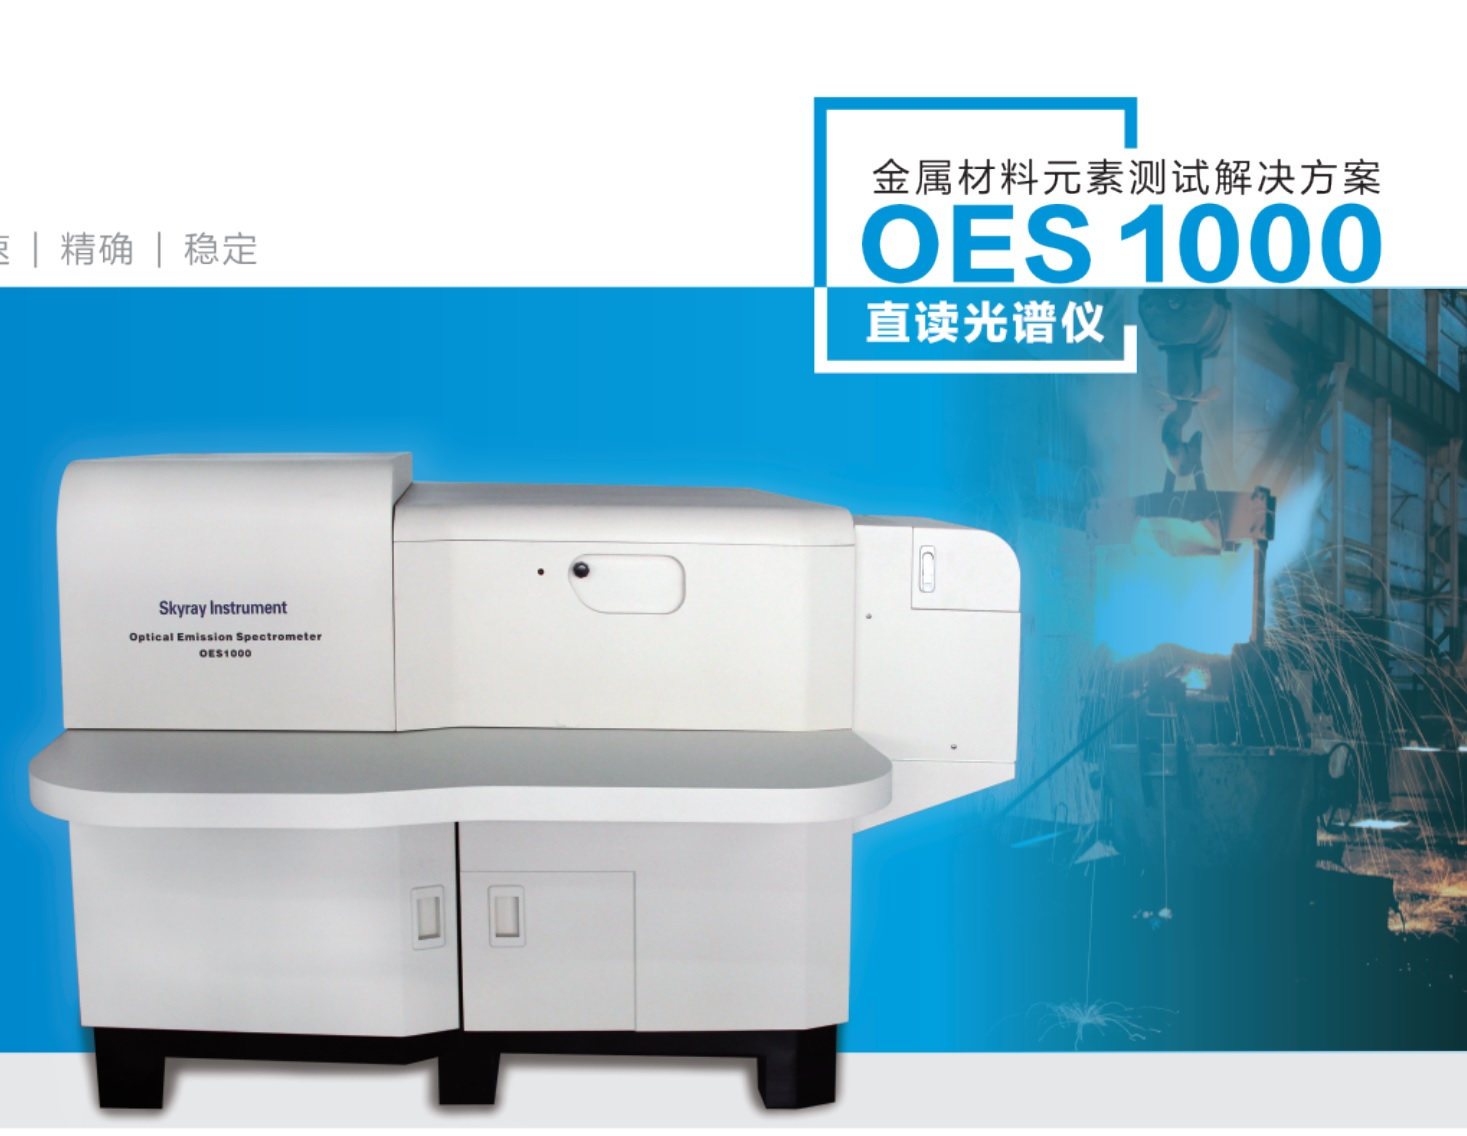 Jiangsu Skyray Instrument Co., Ltd.-OES1000